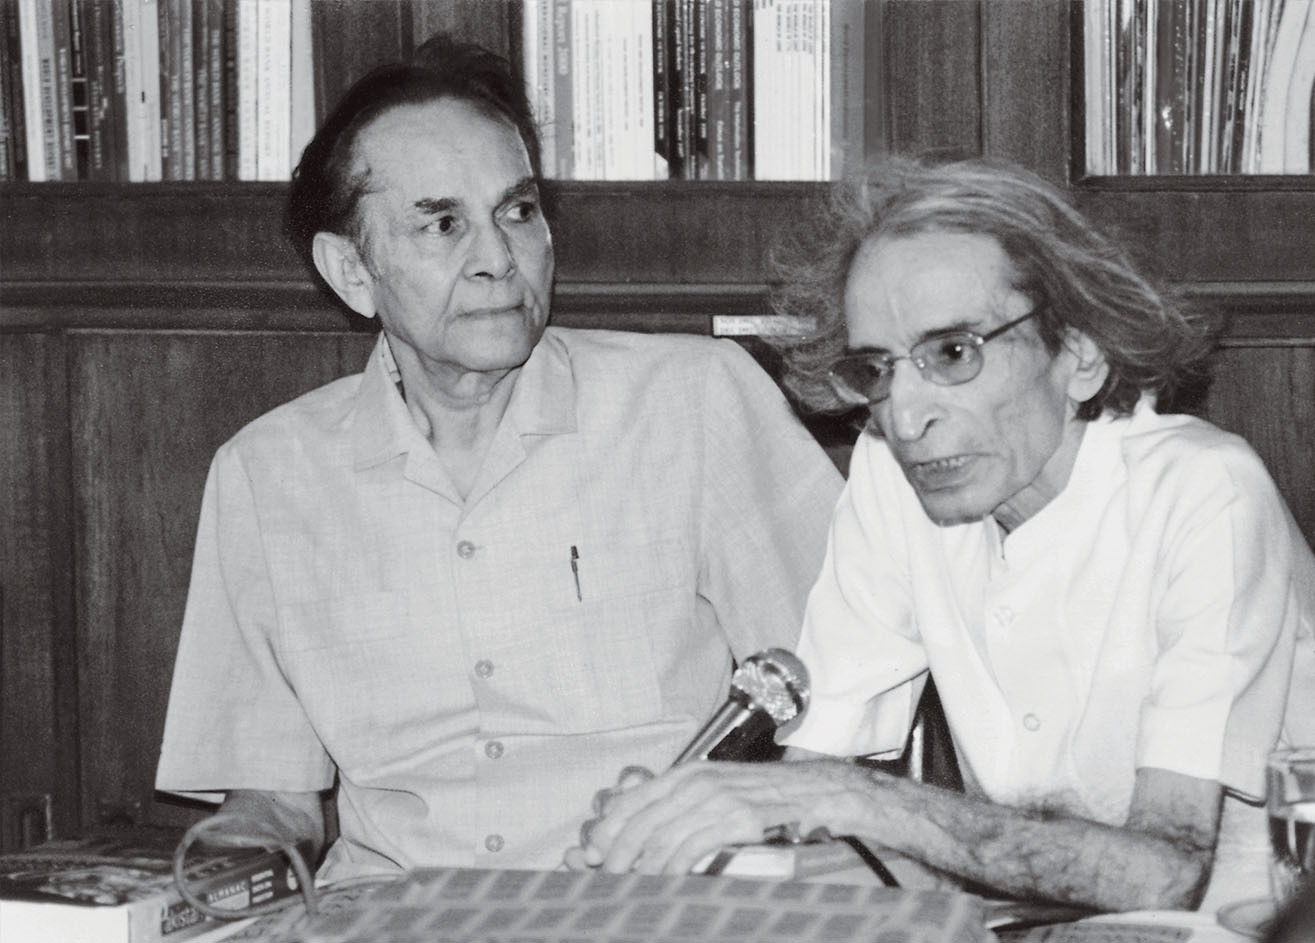 The writer with Editor Ahmed Ali Khan (left) at a ceremony where he donated his books to the *Dawn* Library which now has a separate corner dedicated to him called the Zamir Niazi Collection. | Photo: Private collection of Niazi family